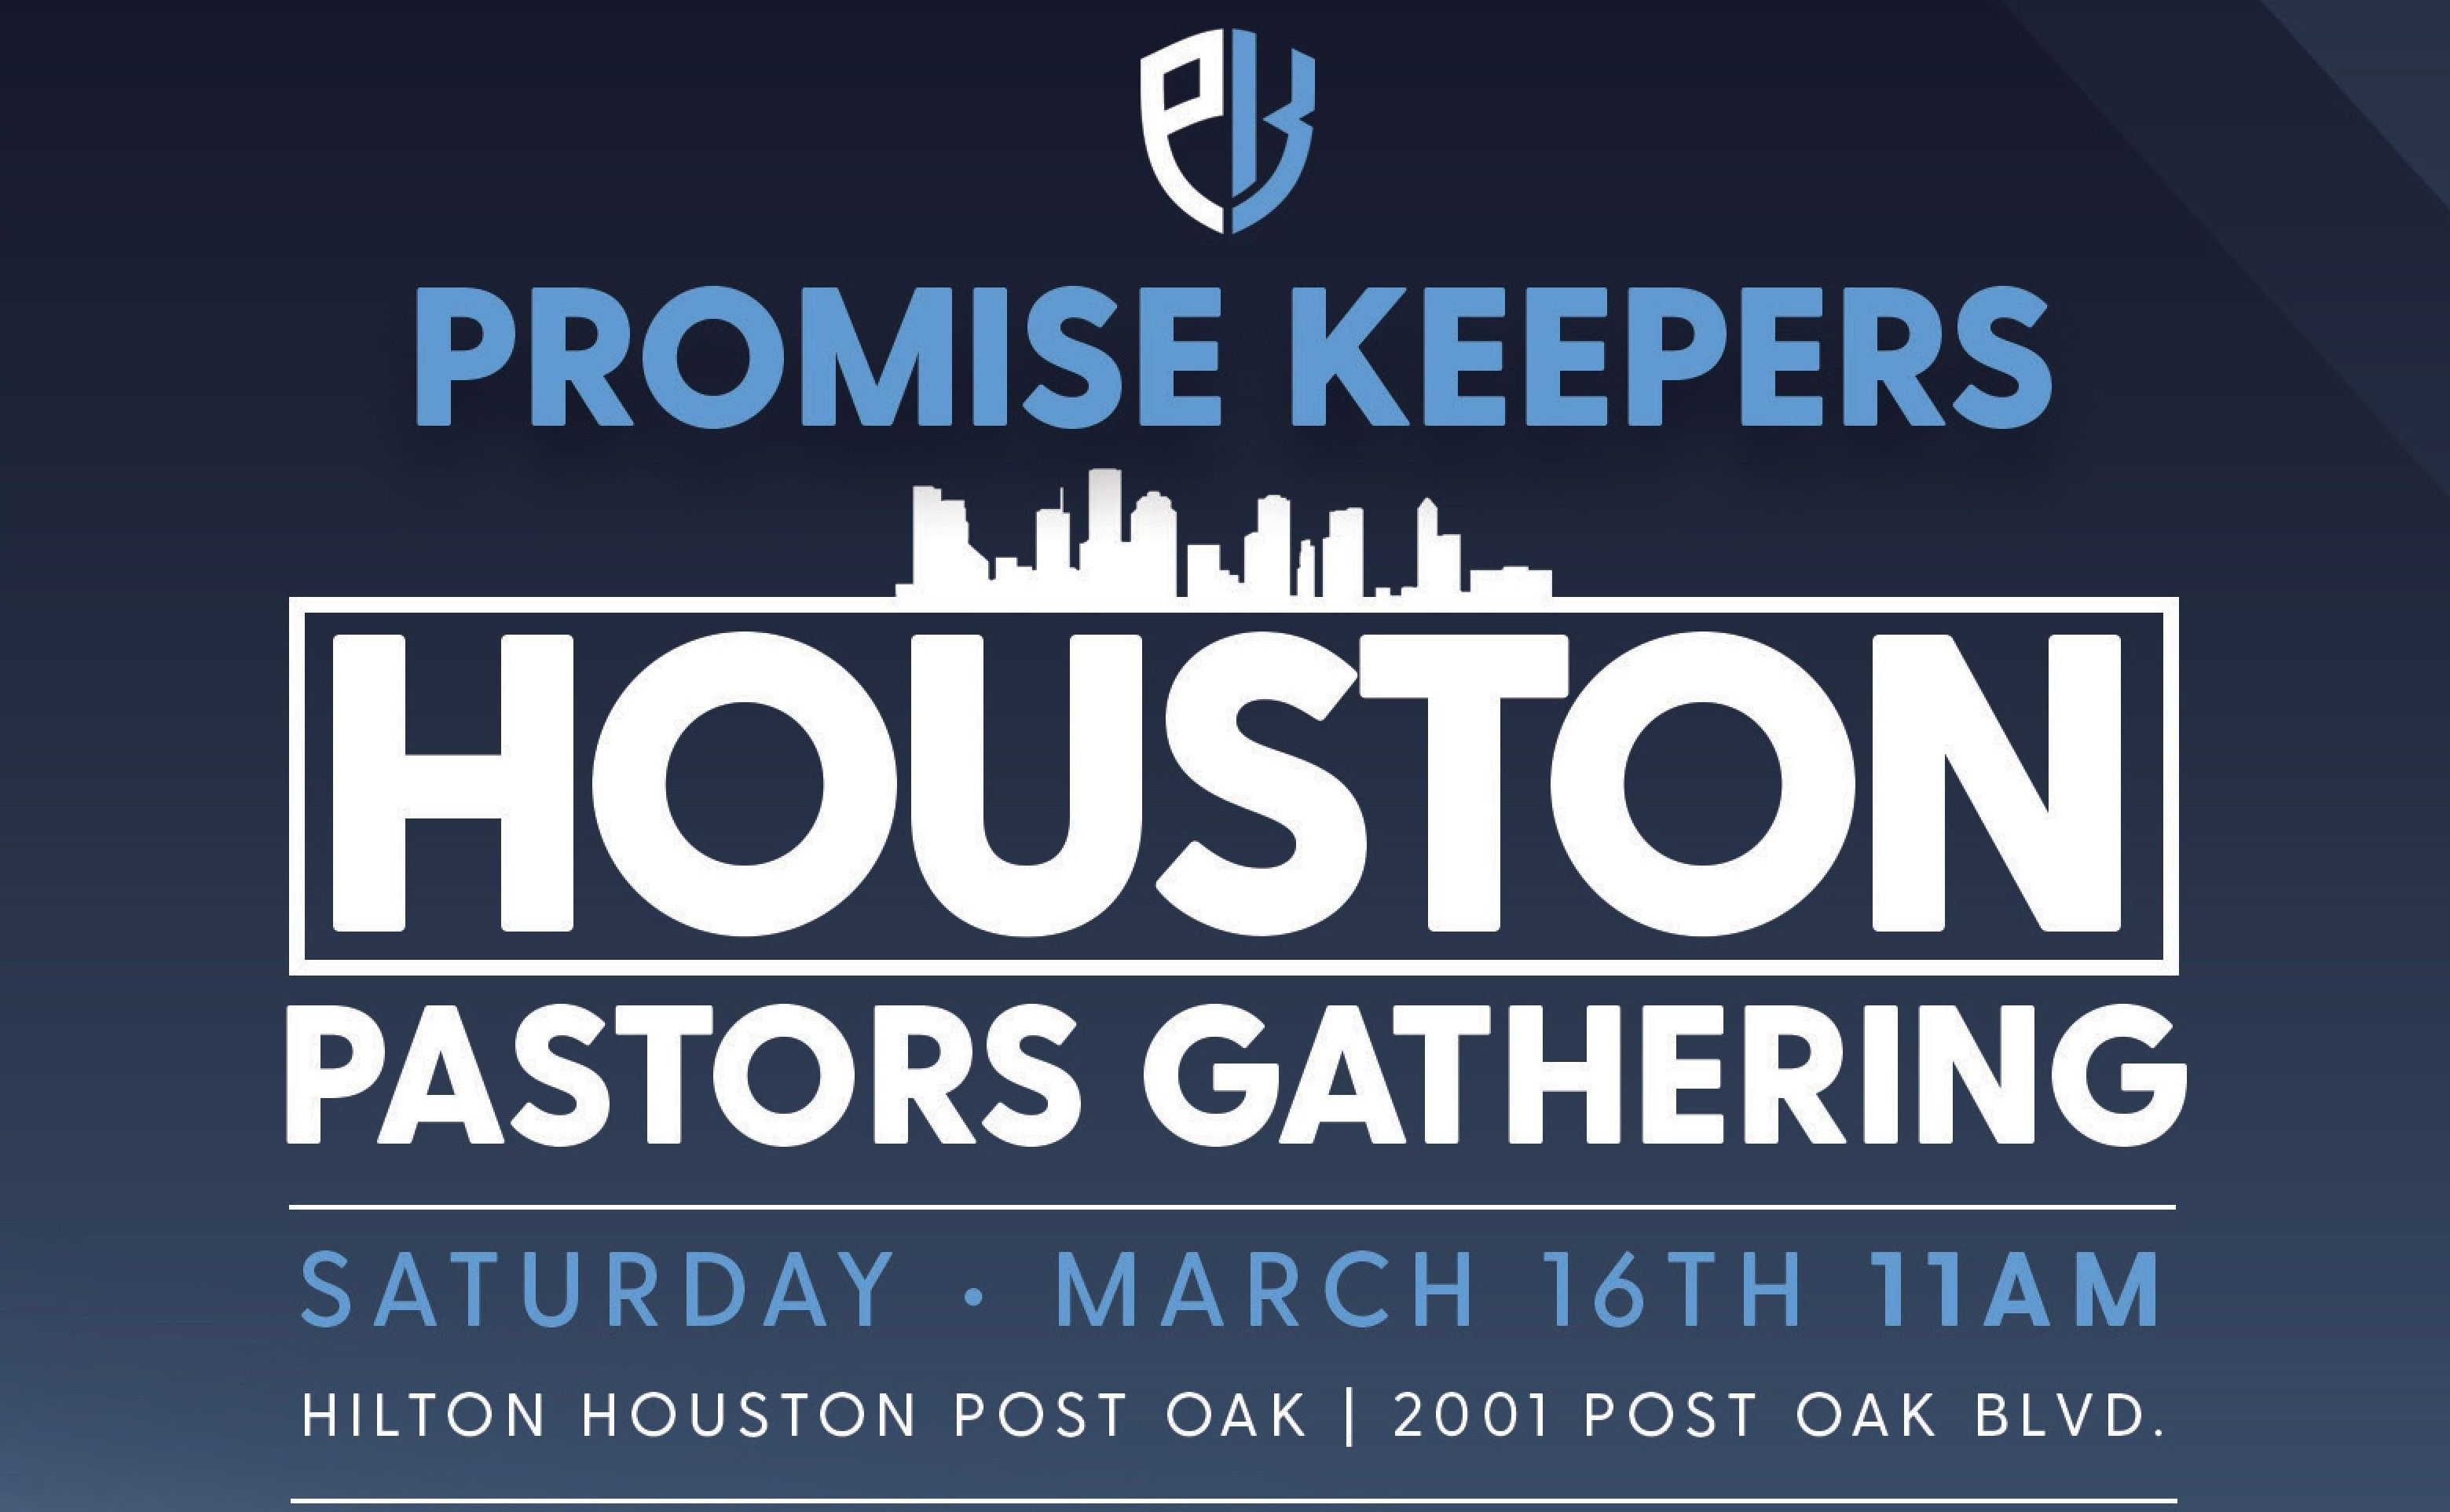 Promise Keepers Houston Pastor Luncheon